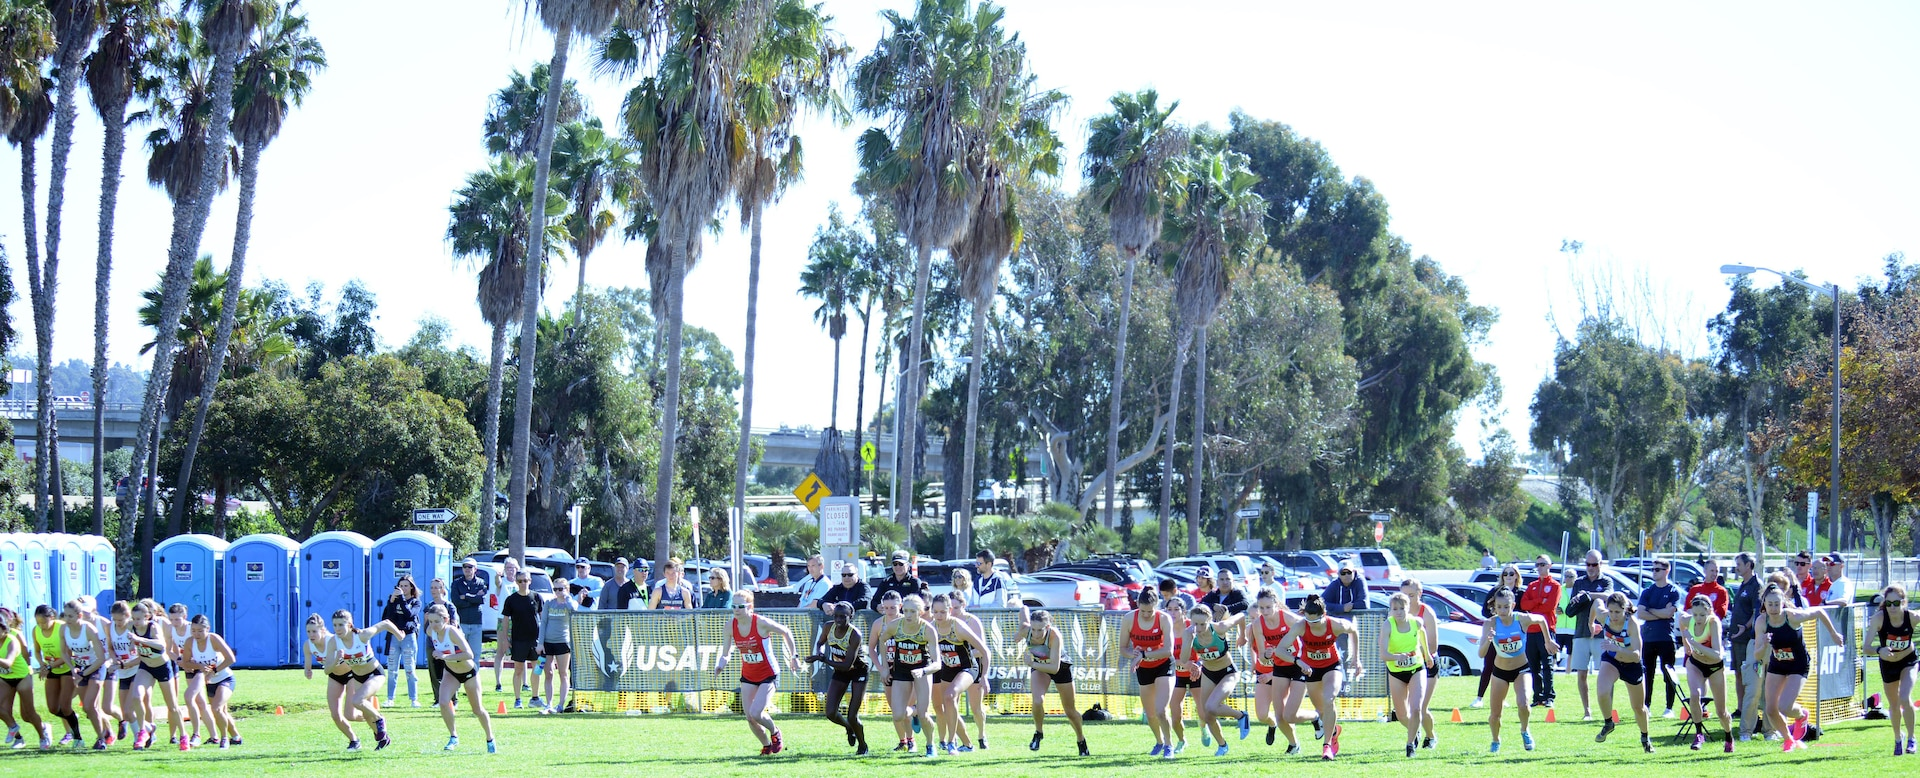 Runners begin the women's Armed Forces Cross Country Championship, run in conjunction with the USA Track and Field Cross Country Championships senior women 10K race at Mision Bay Park in San Diego, Calif., Jan. 18, 2019.